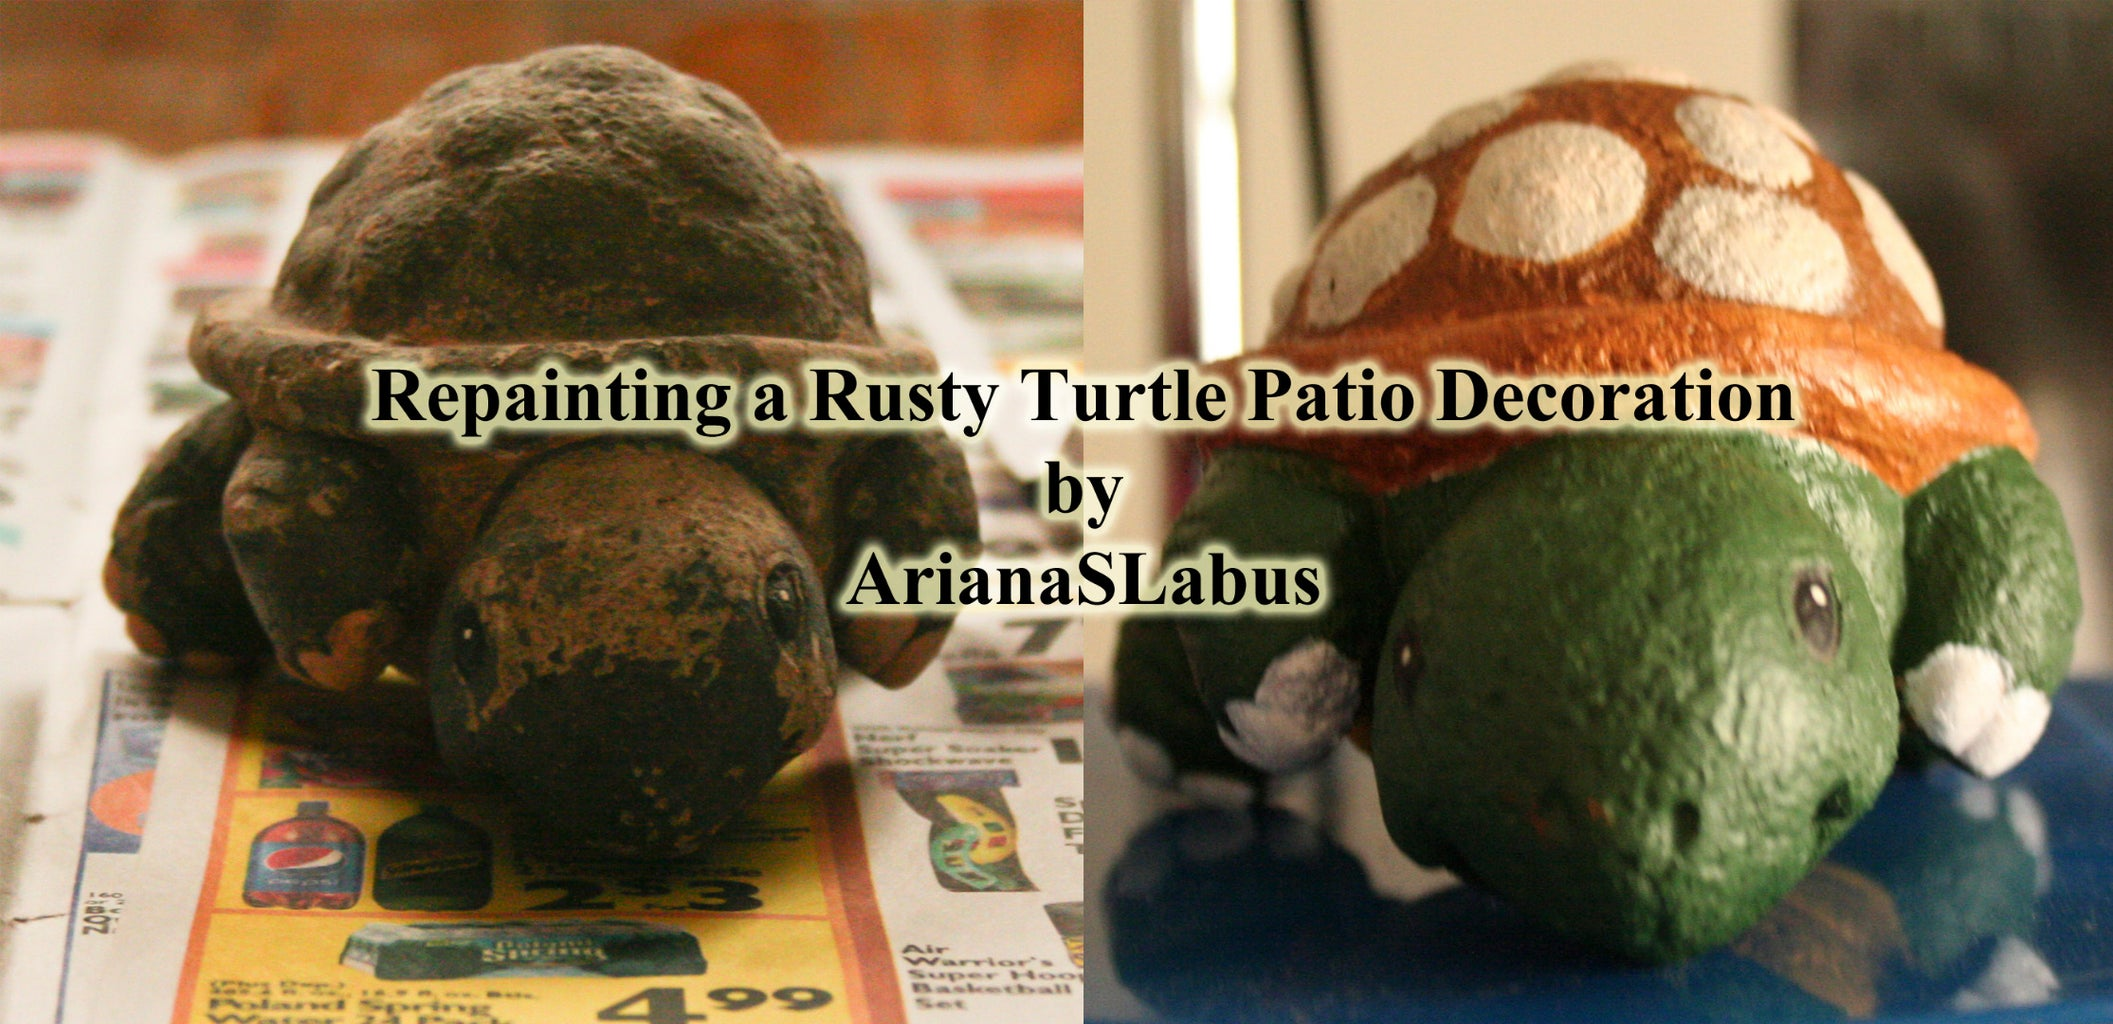 Repainting a Rusty Turtle Patio Decoration